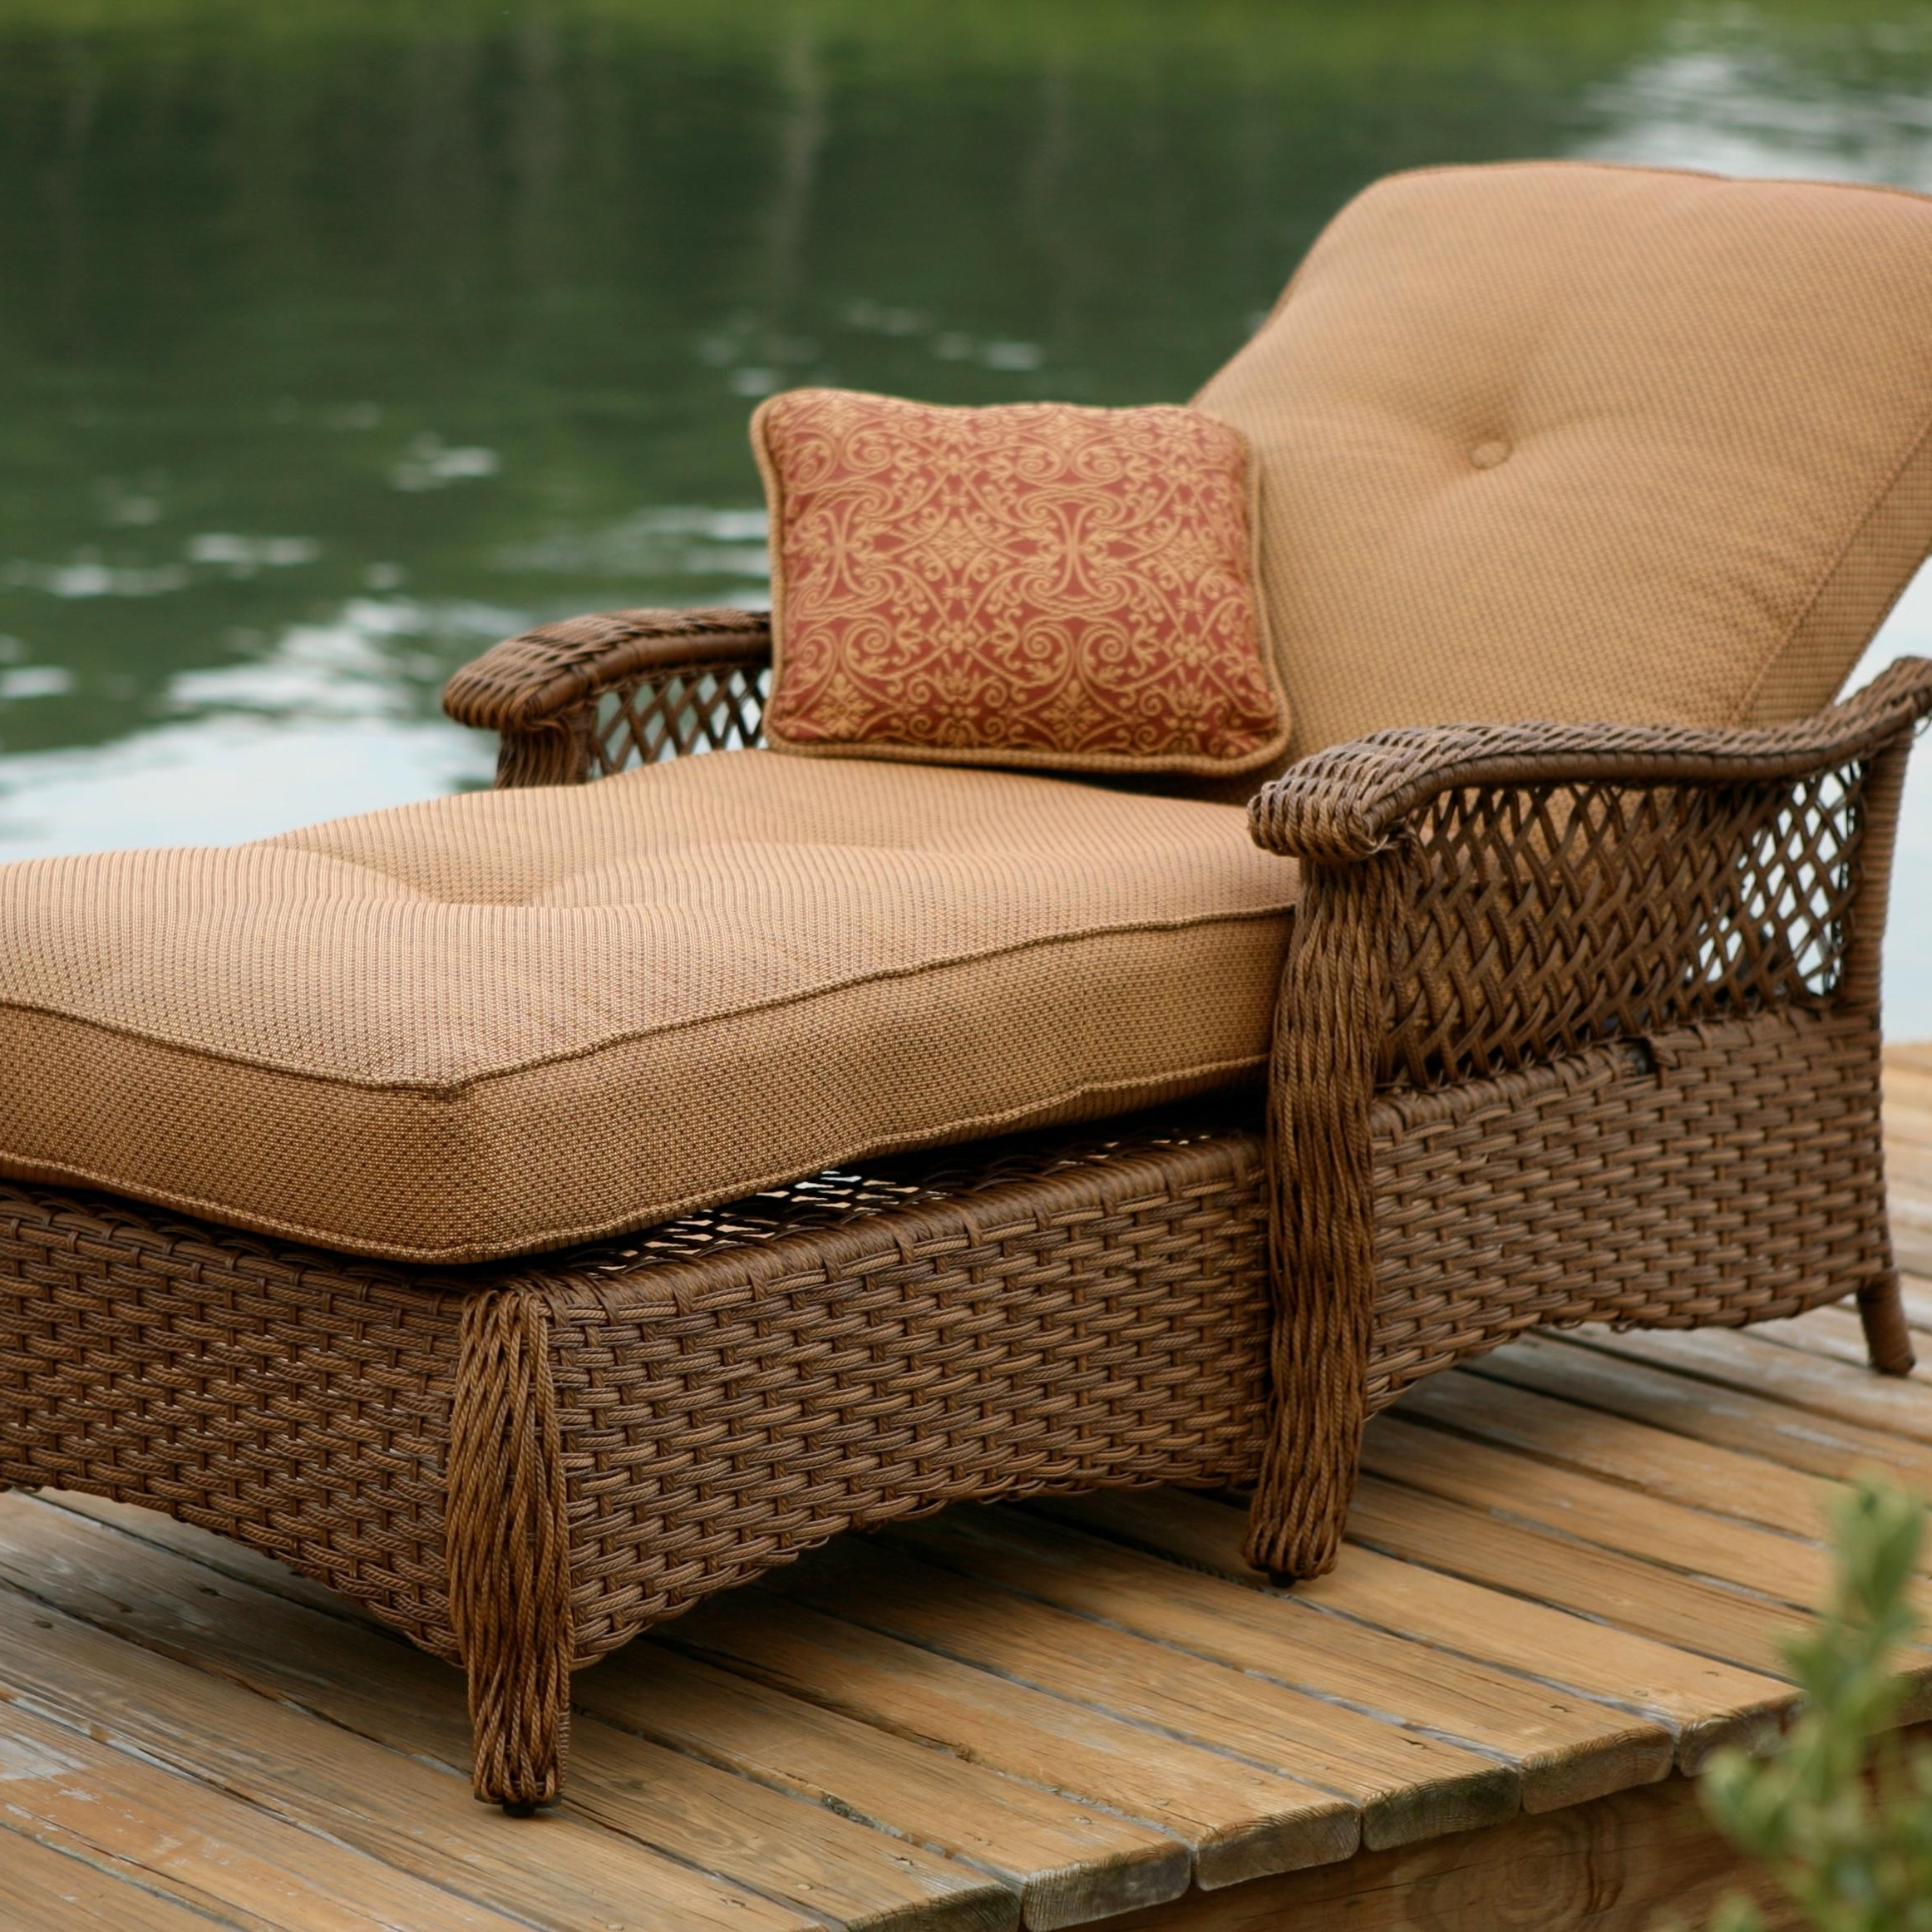 Patio Furniture Chaise Lounges Throughout Most Popular Patio Chaise Lounge Chair Cushions • Lounge Chairs Ideas (View 13 of 15)